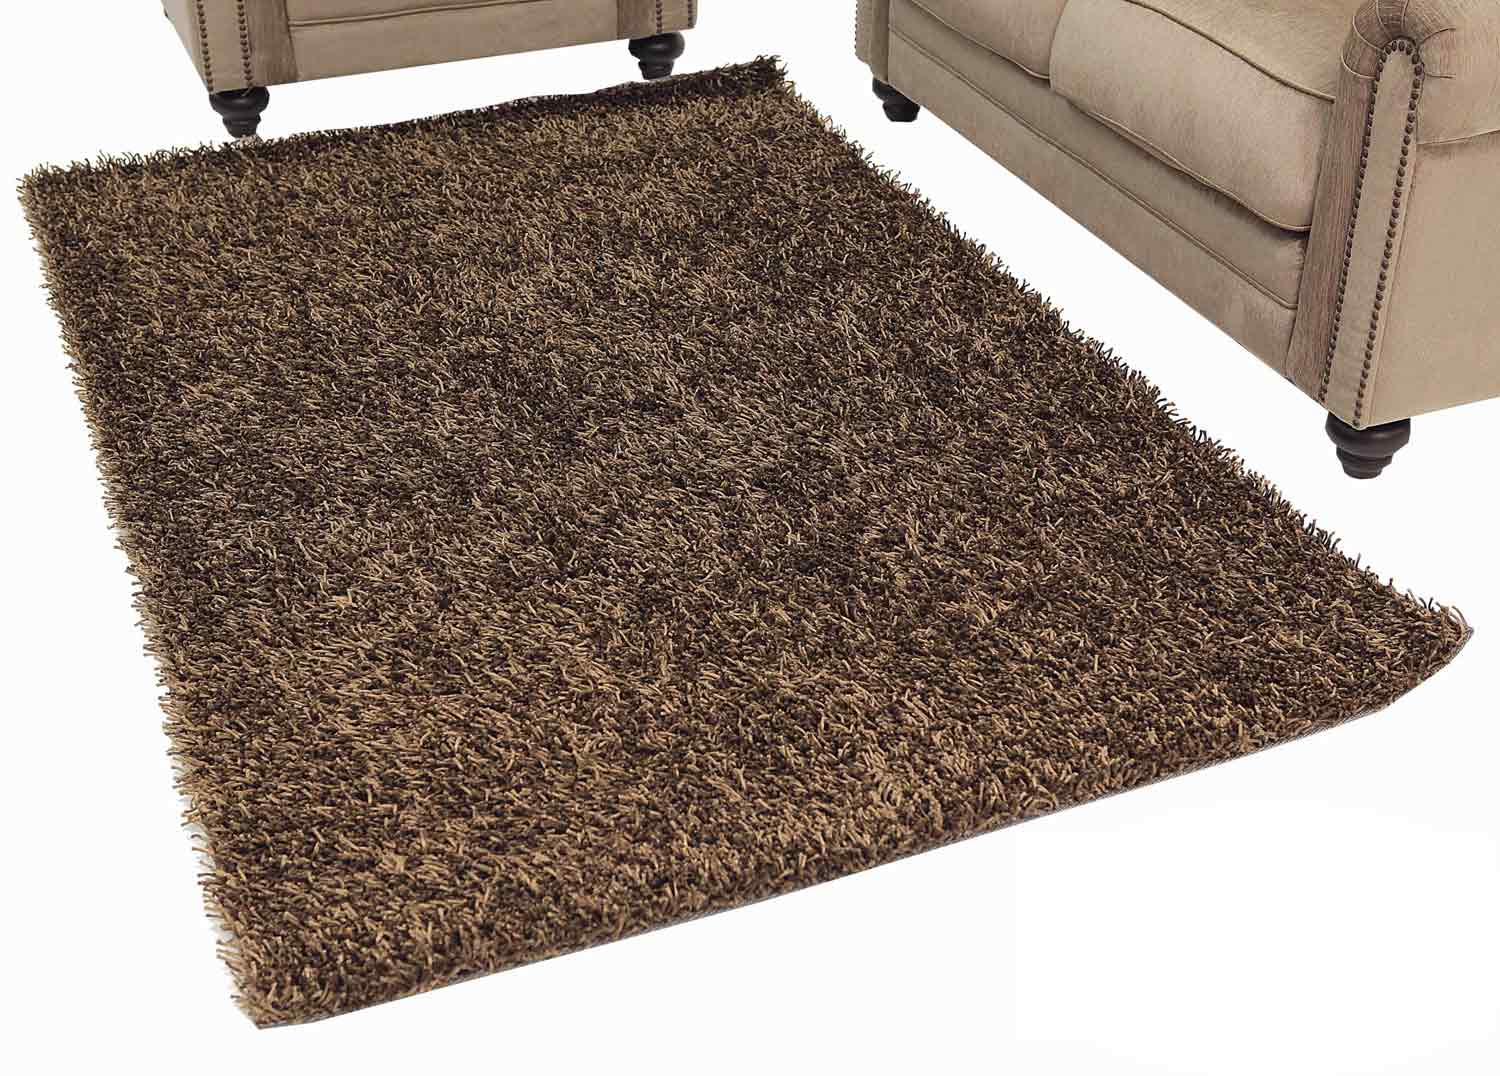 Abbyson Living AR-YS-TS017 Shag Rug 2 x 3-Feet - Two-Tone Brown